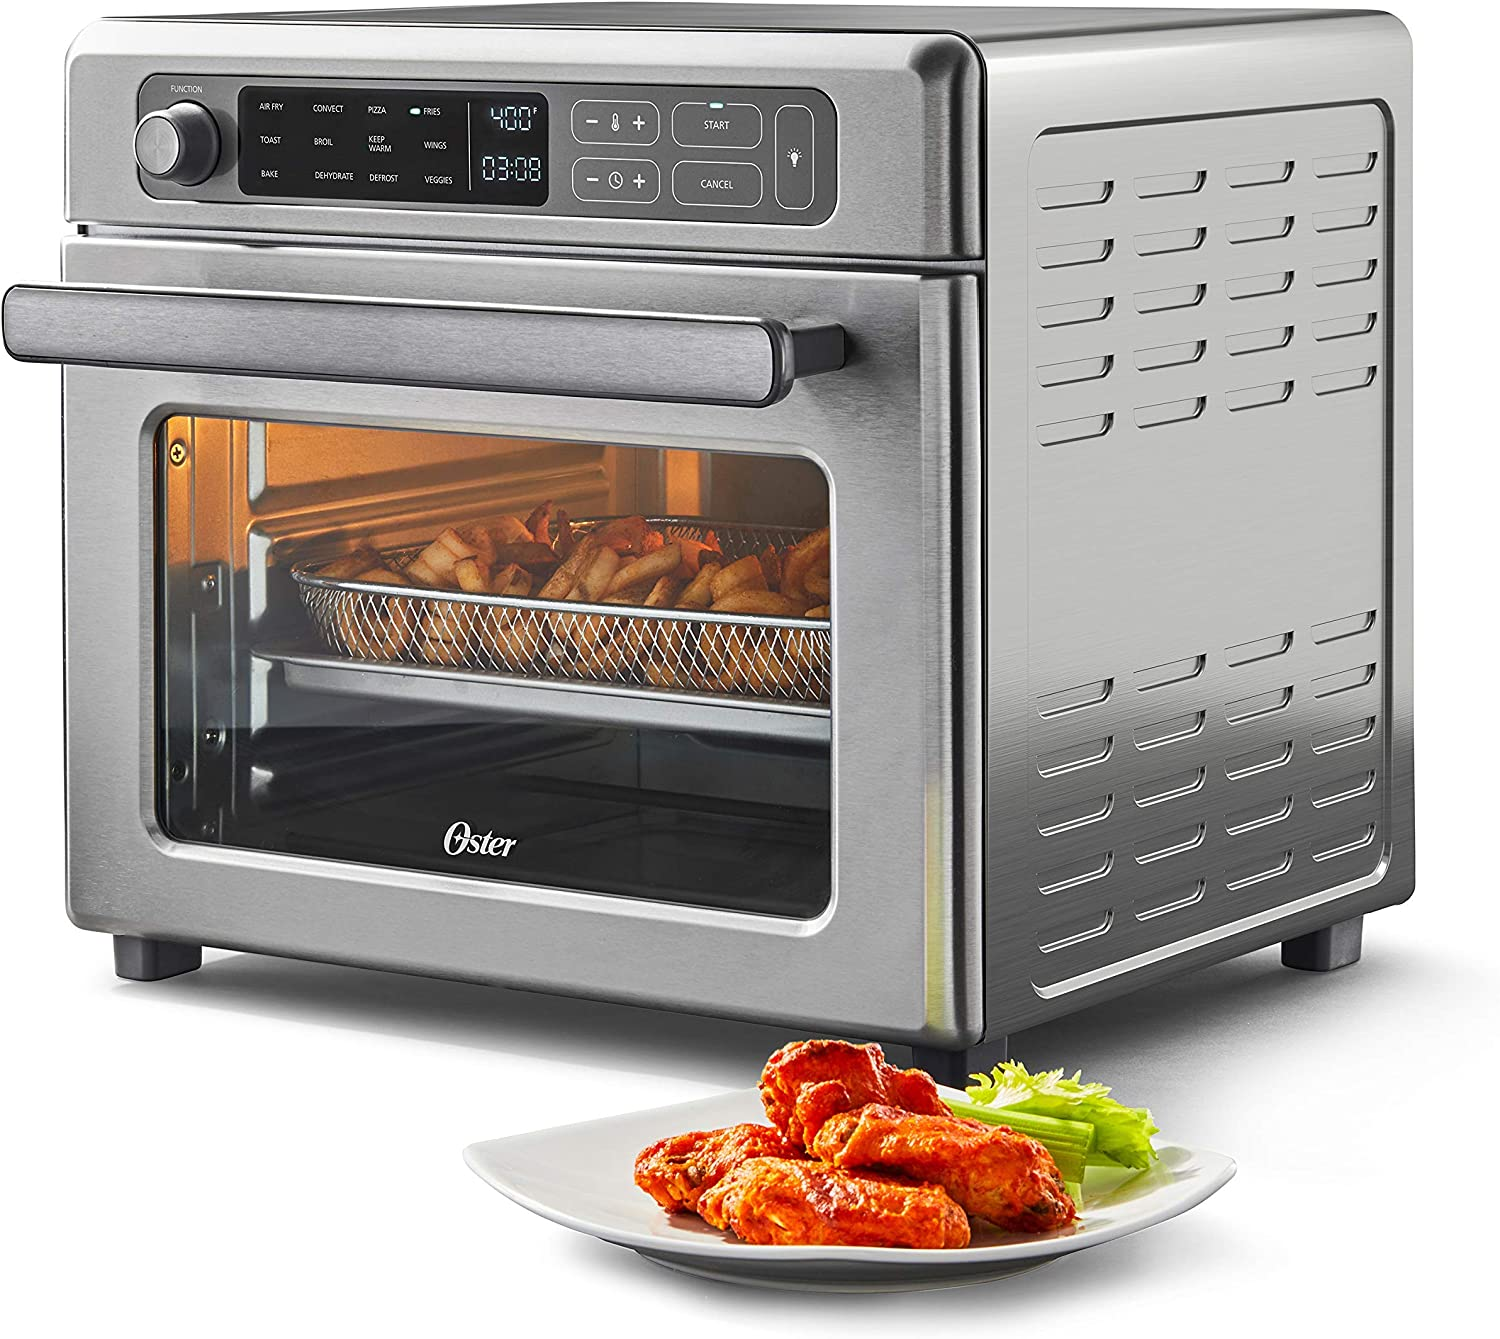 Oster Digital Air San Diego Mall Fryer Oven with 1 Manufacturer direct delivery RapidCrisp Stainless Steel